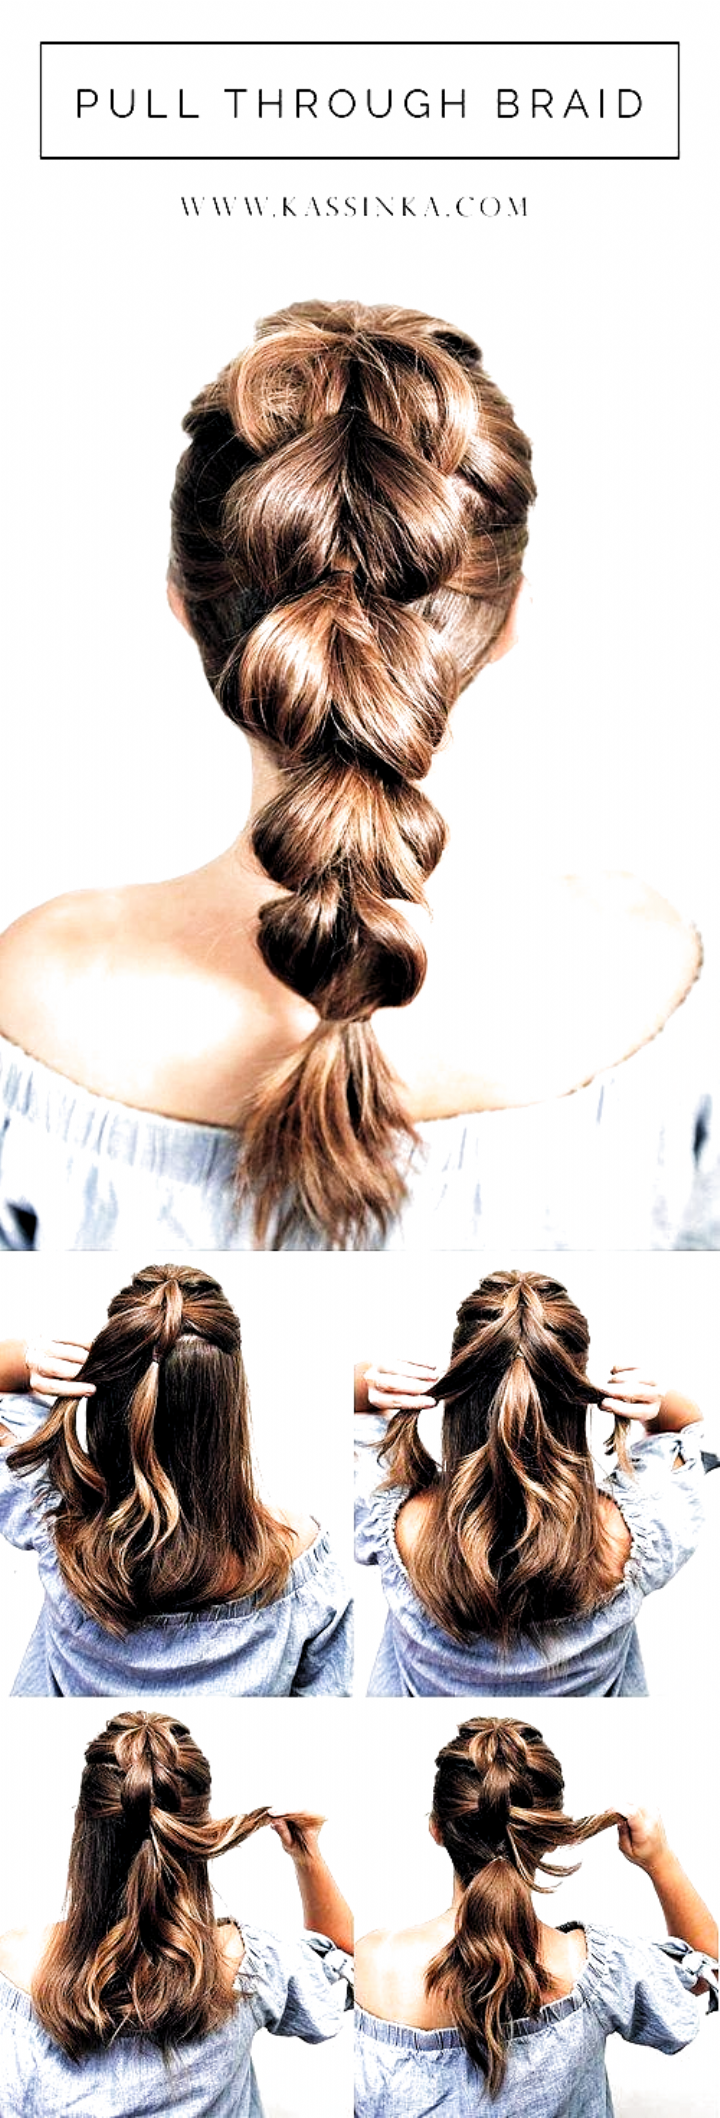 15 Easy Prom Hairstyles For Medium To Long Hair You Can Diy At Home With Step To Step Tutorials Prom Hair In 2020 Long Hair Styles Thick Hair Styles Simple Prom Hair